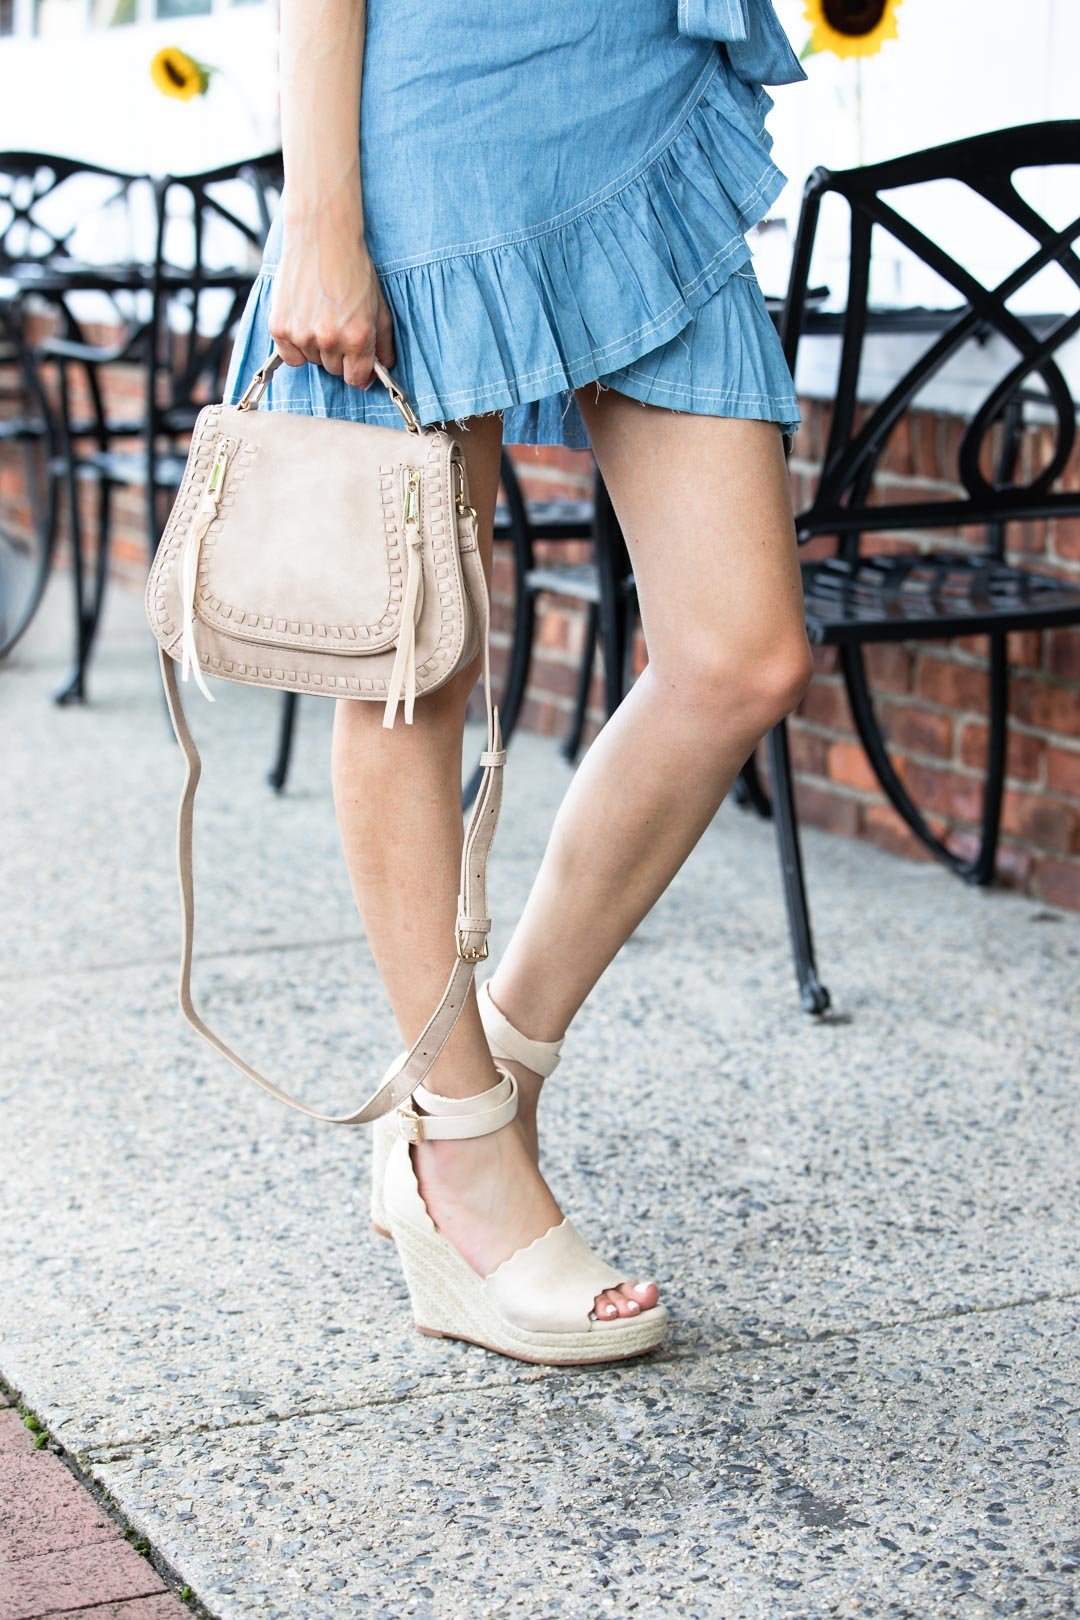 VICIDolls Chambray Dress and Neutral Accessories